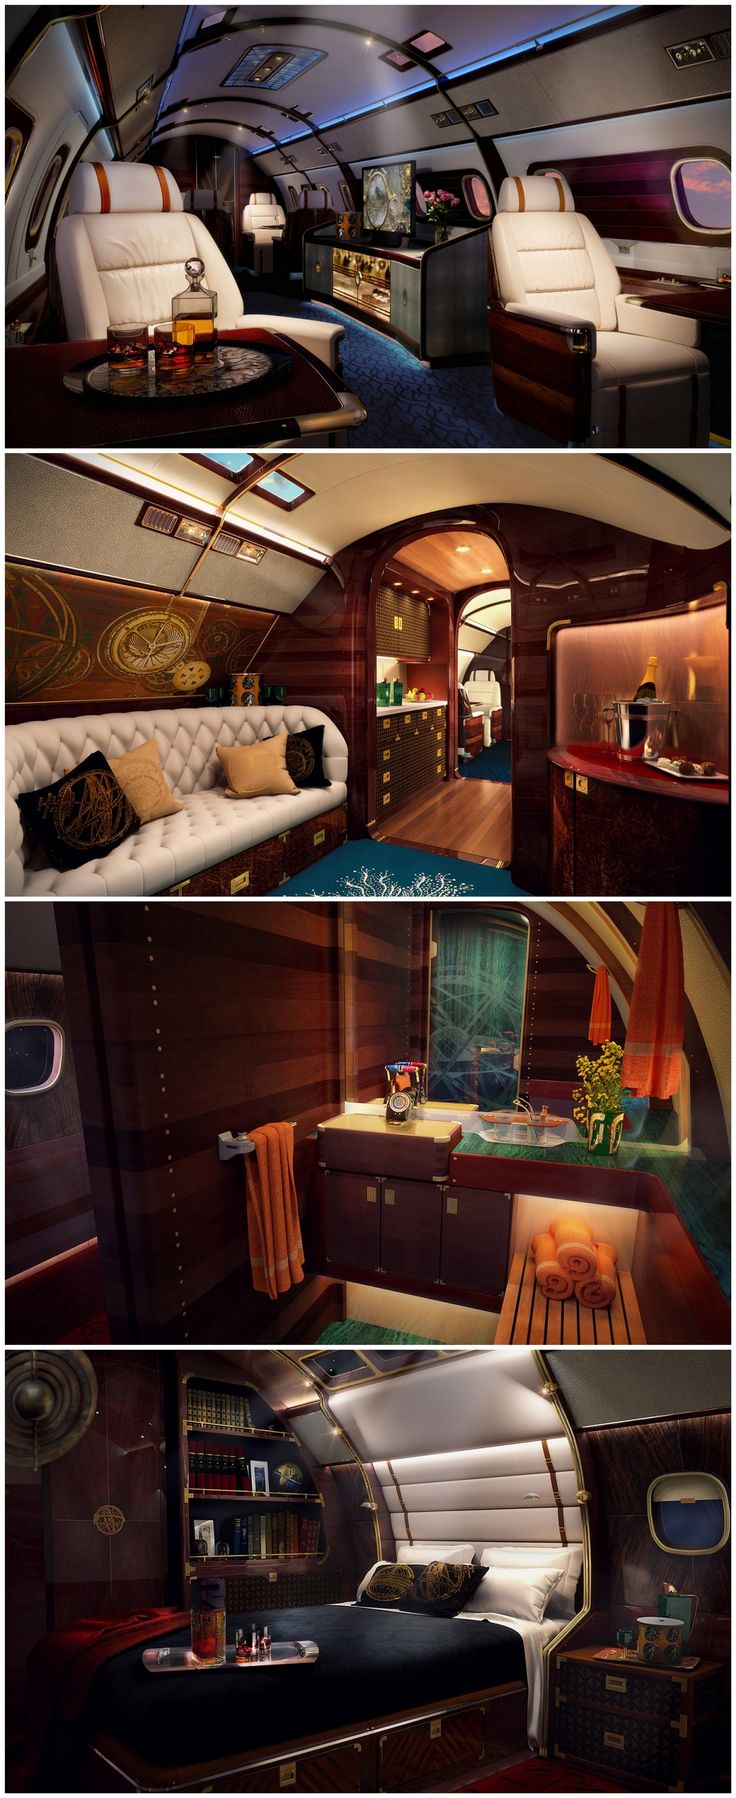 The World's Most Luxurious Private Jet Is a Yacht for the Sky...* collage by @styleestate